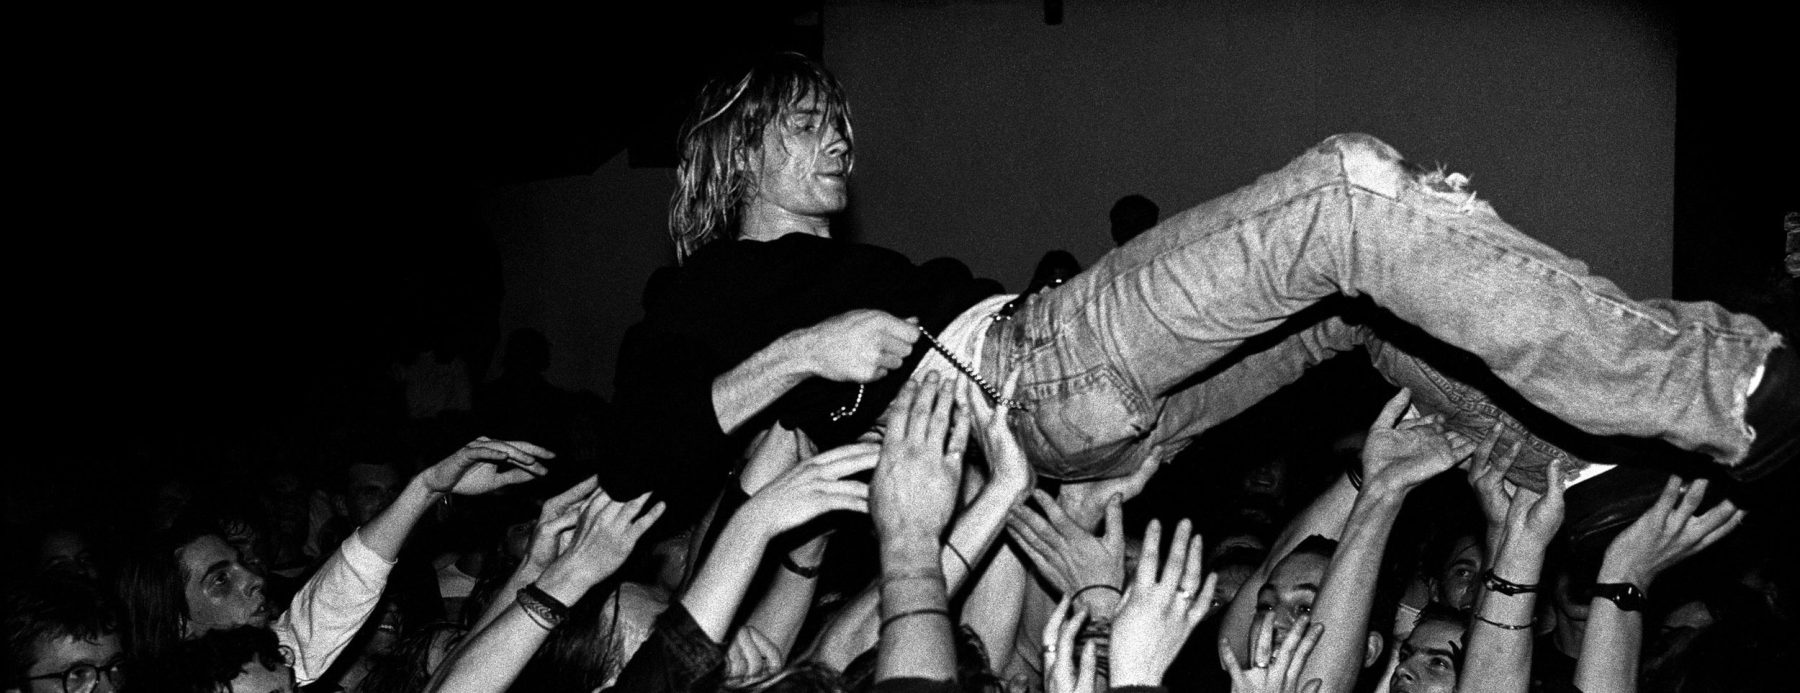 Nirvana singer Kurt Cobain performs in Frankfurt, Germany on November 12 1991. (Photo by Paul Bergen/Redferns)